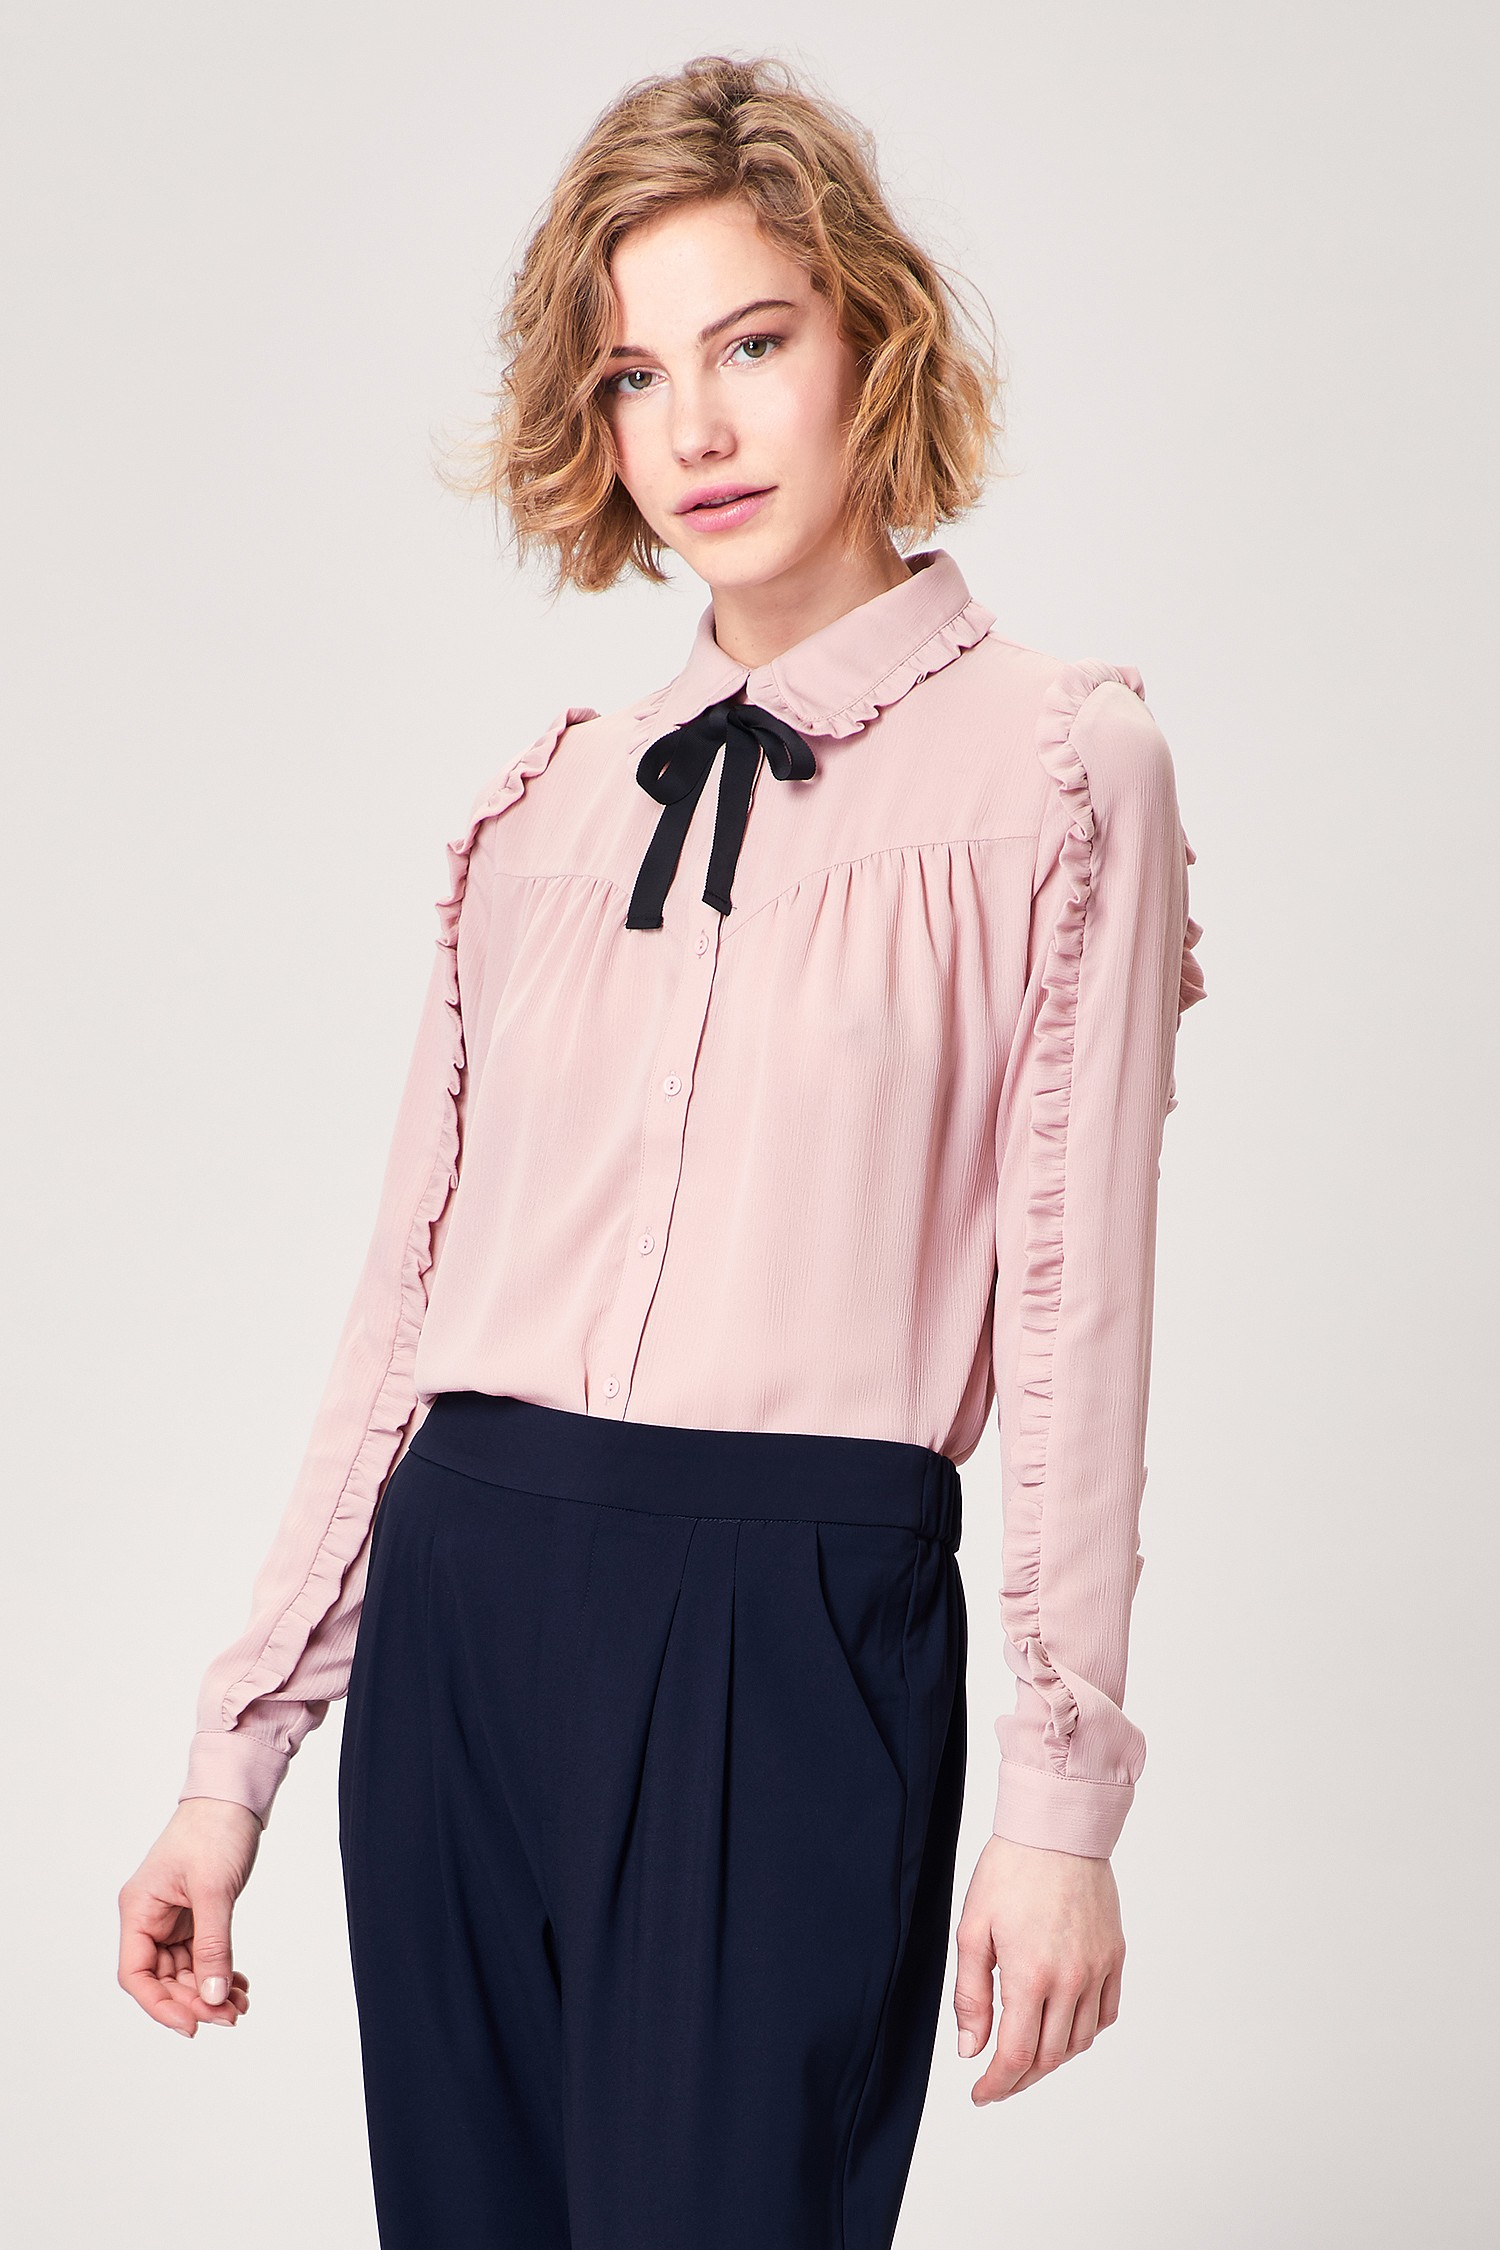 Blush Pink Pussy Bow Blouse